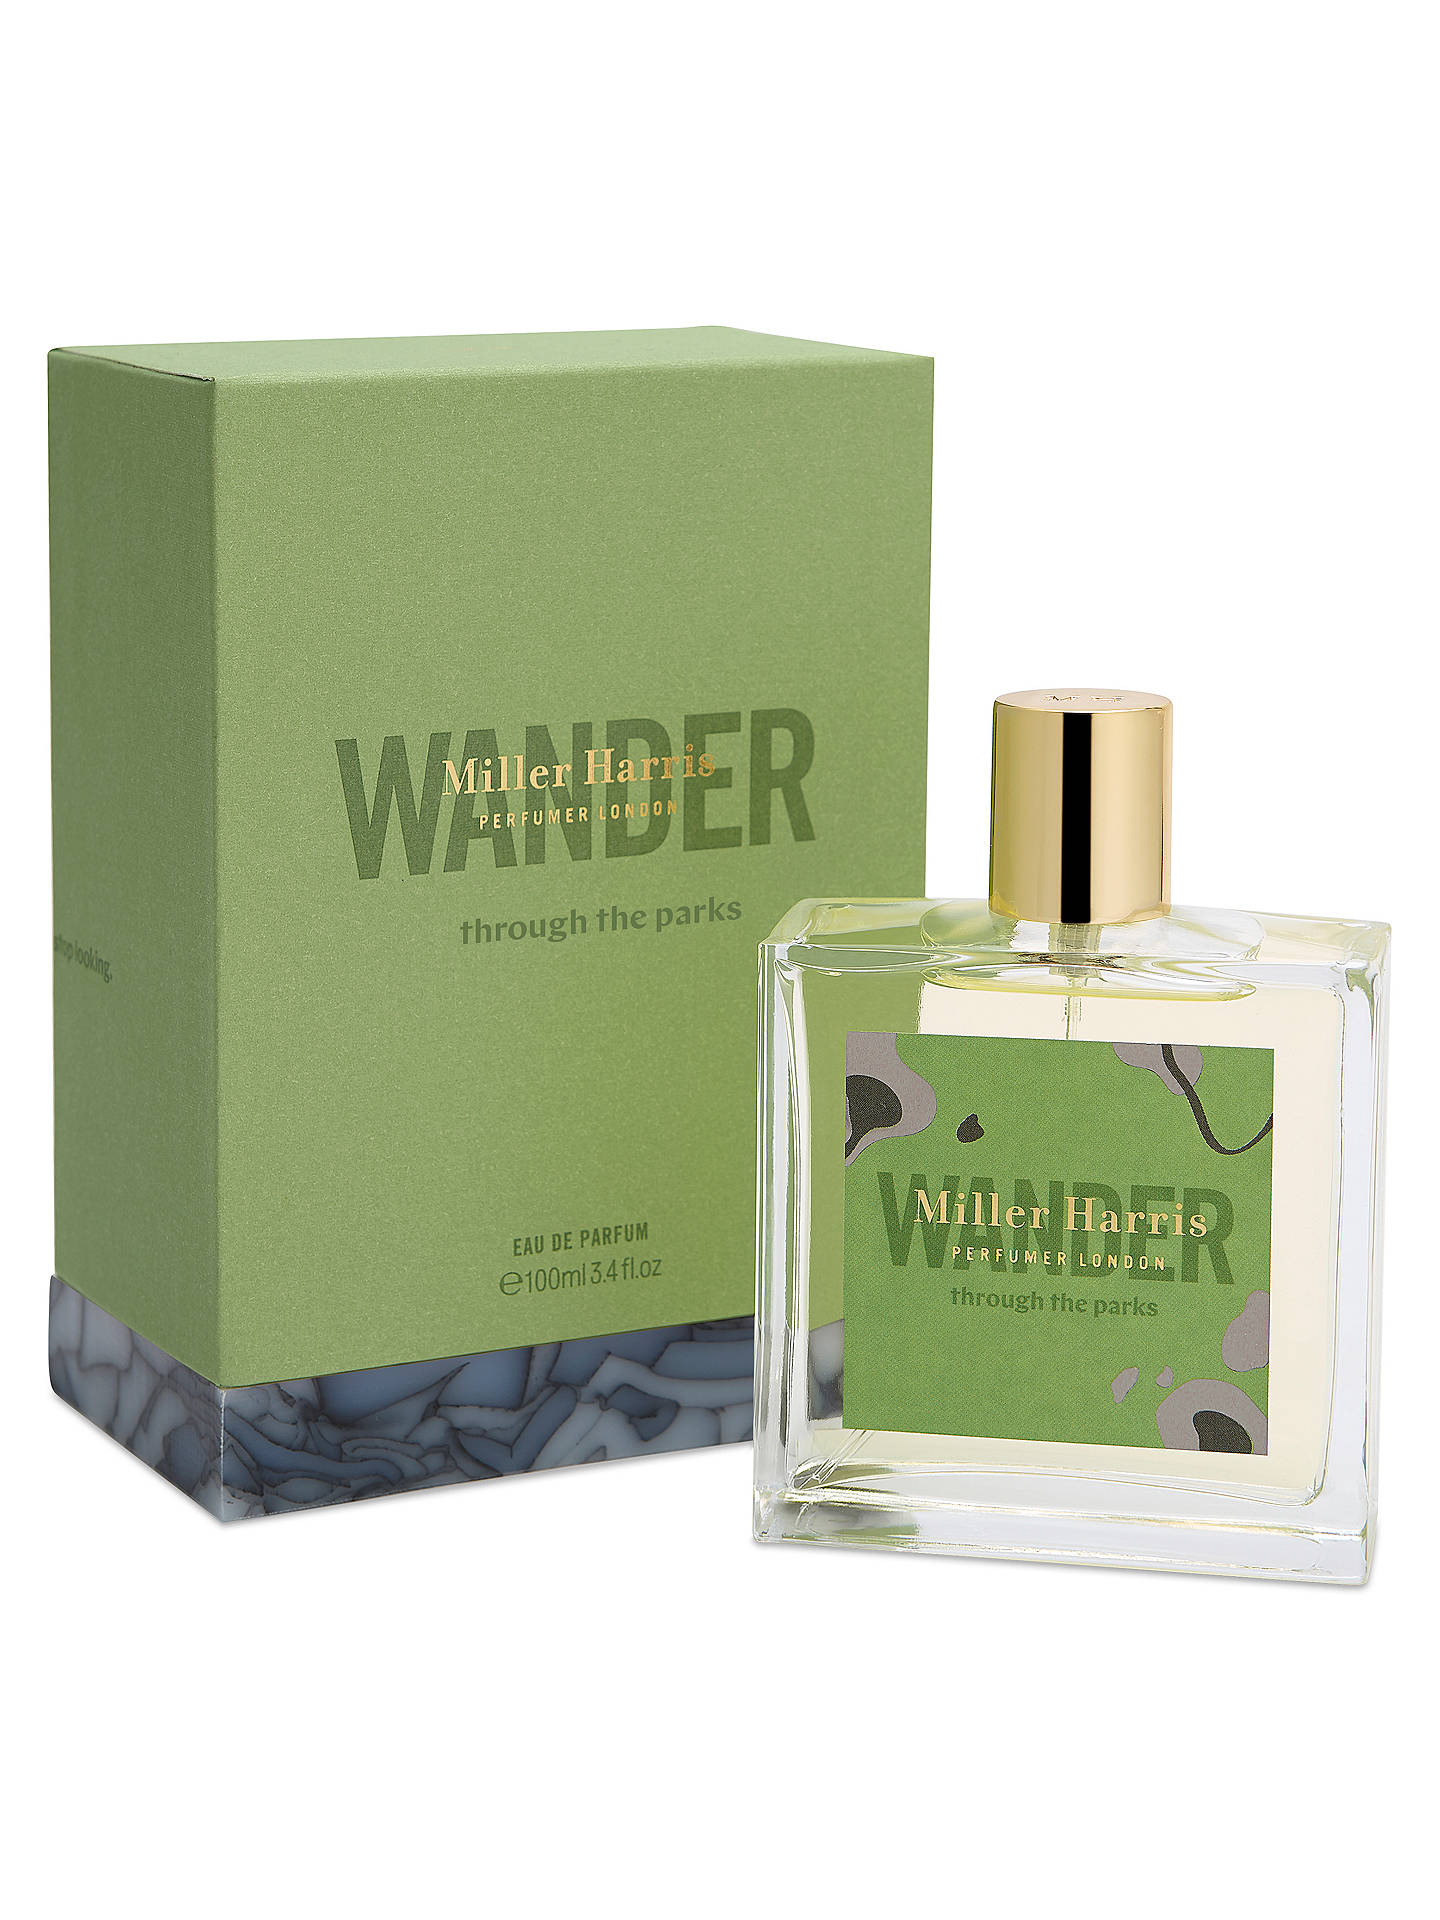 BuyMiller Harris Wander Through The Parks Eau de Parfum, 50ml Online at johnlewis.com